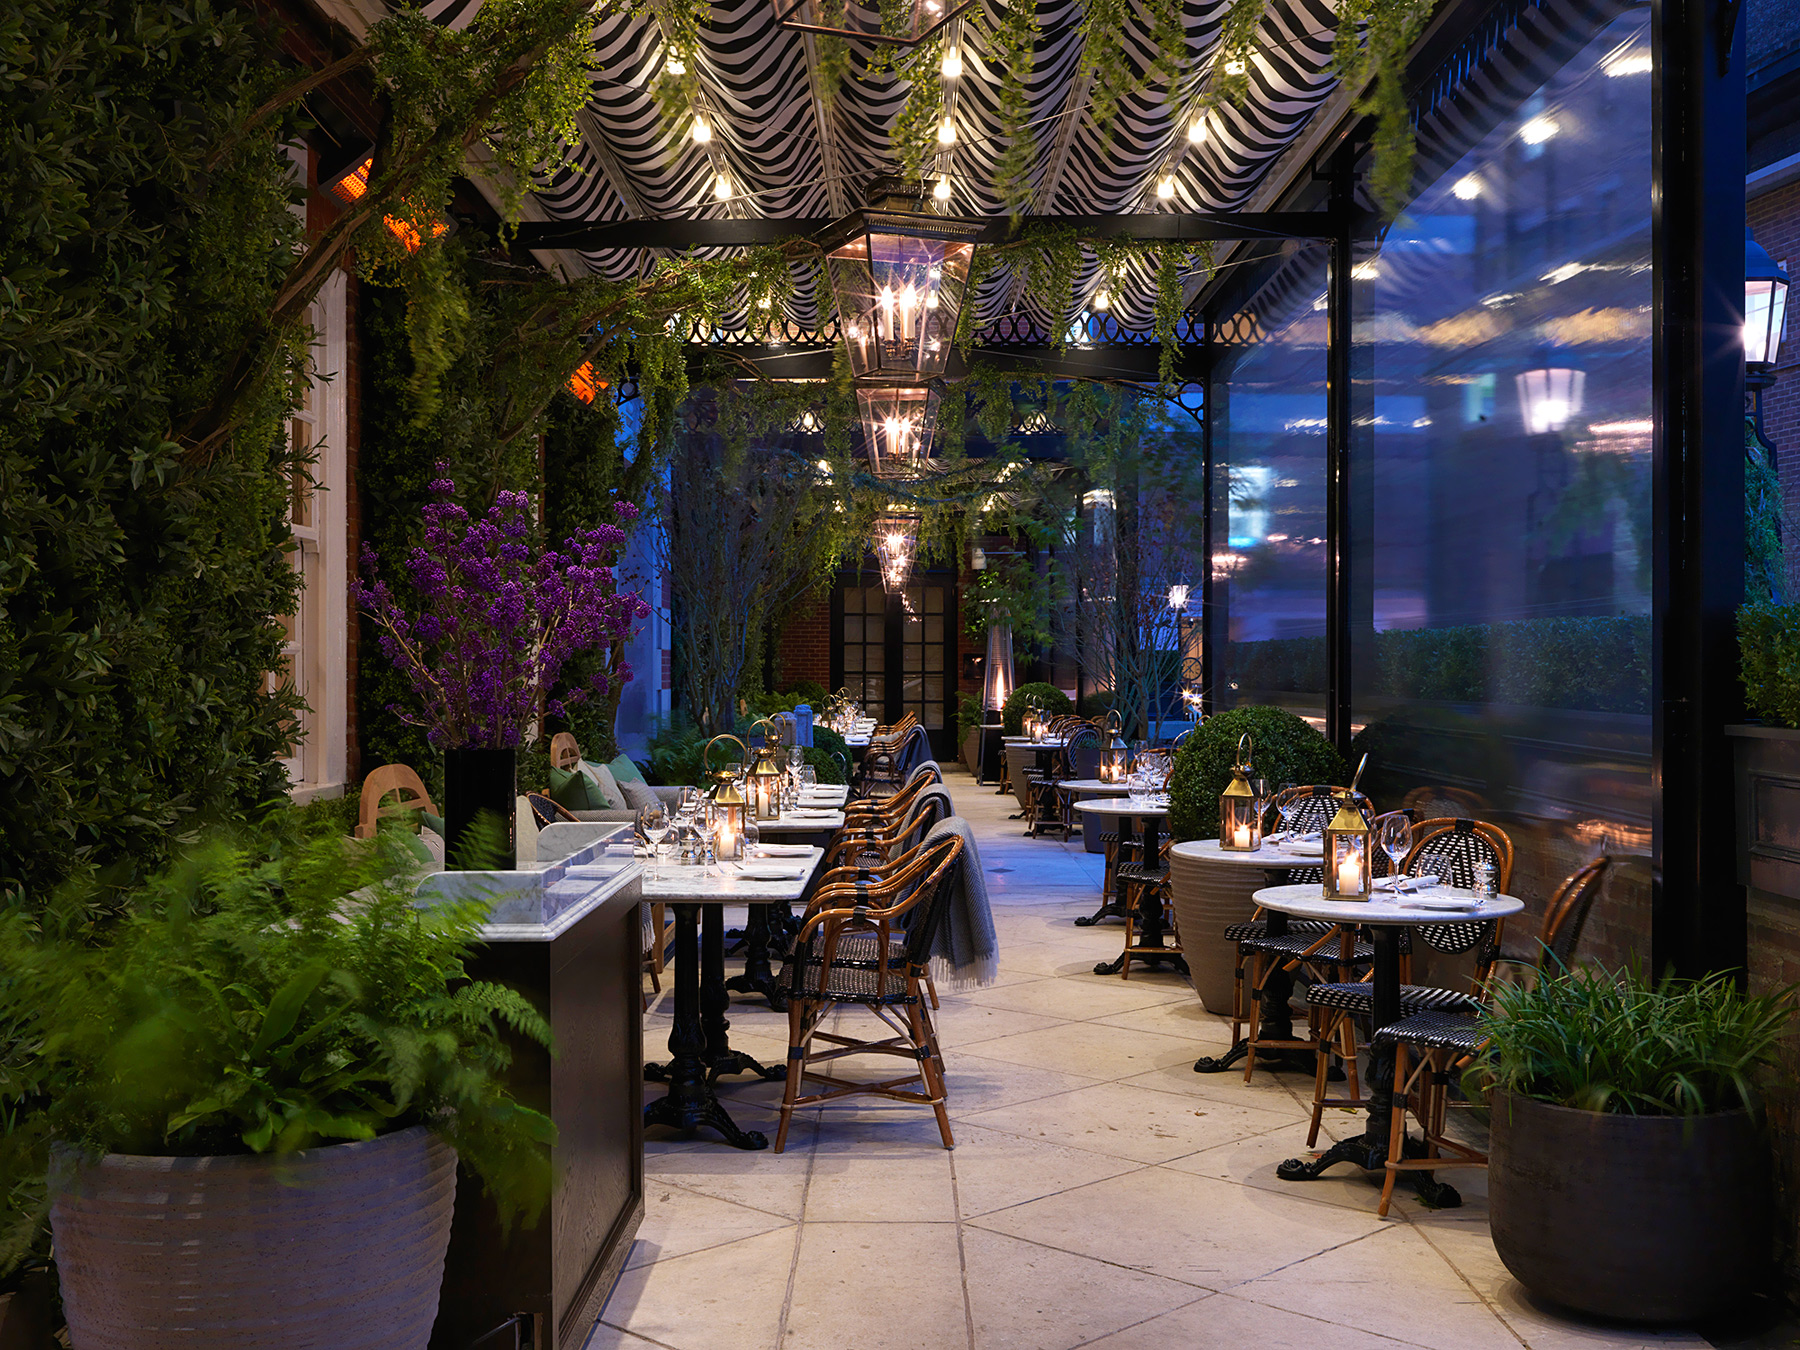 Dalloway terrace at the bloomsbury london for Terrace bar grill